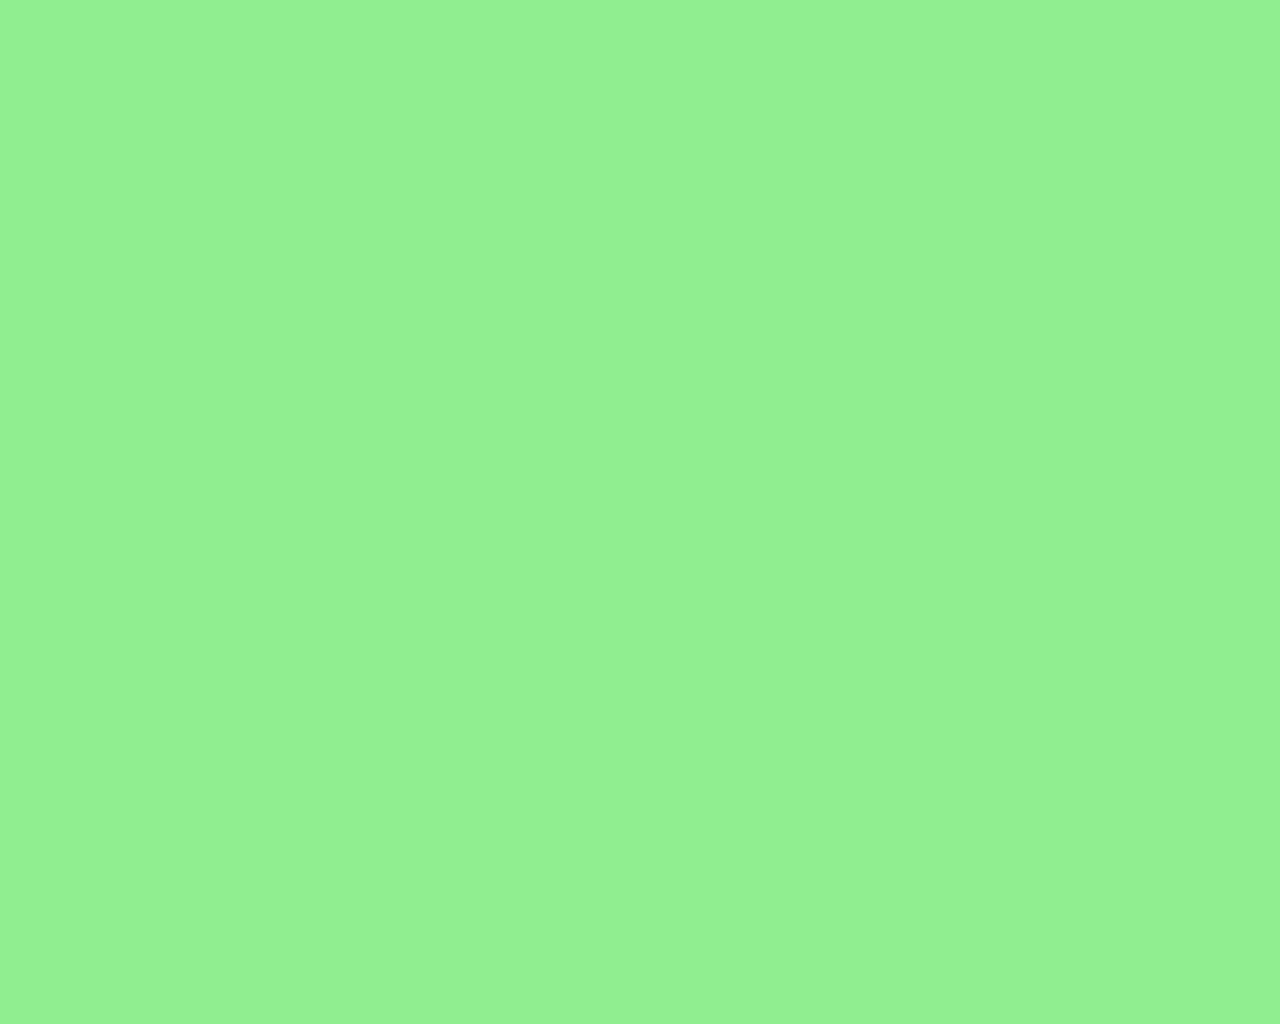 1280x1024 Light Green Solid Color Background